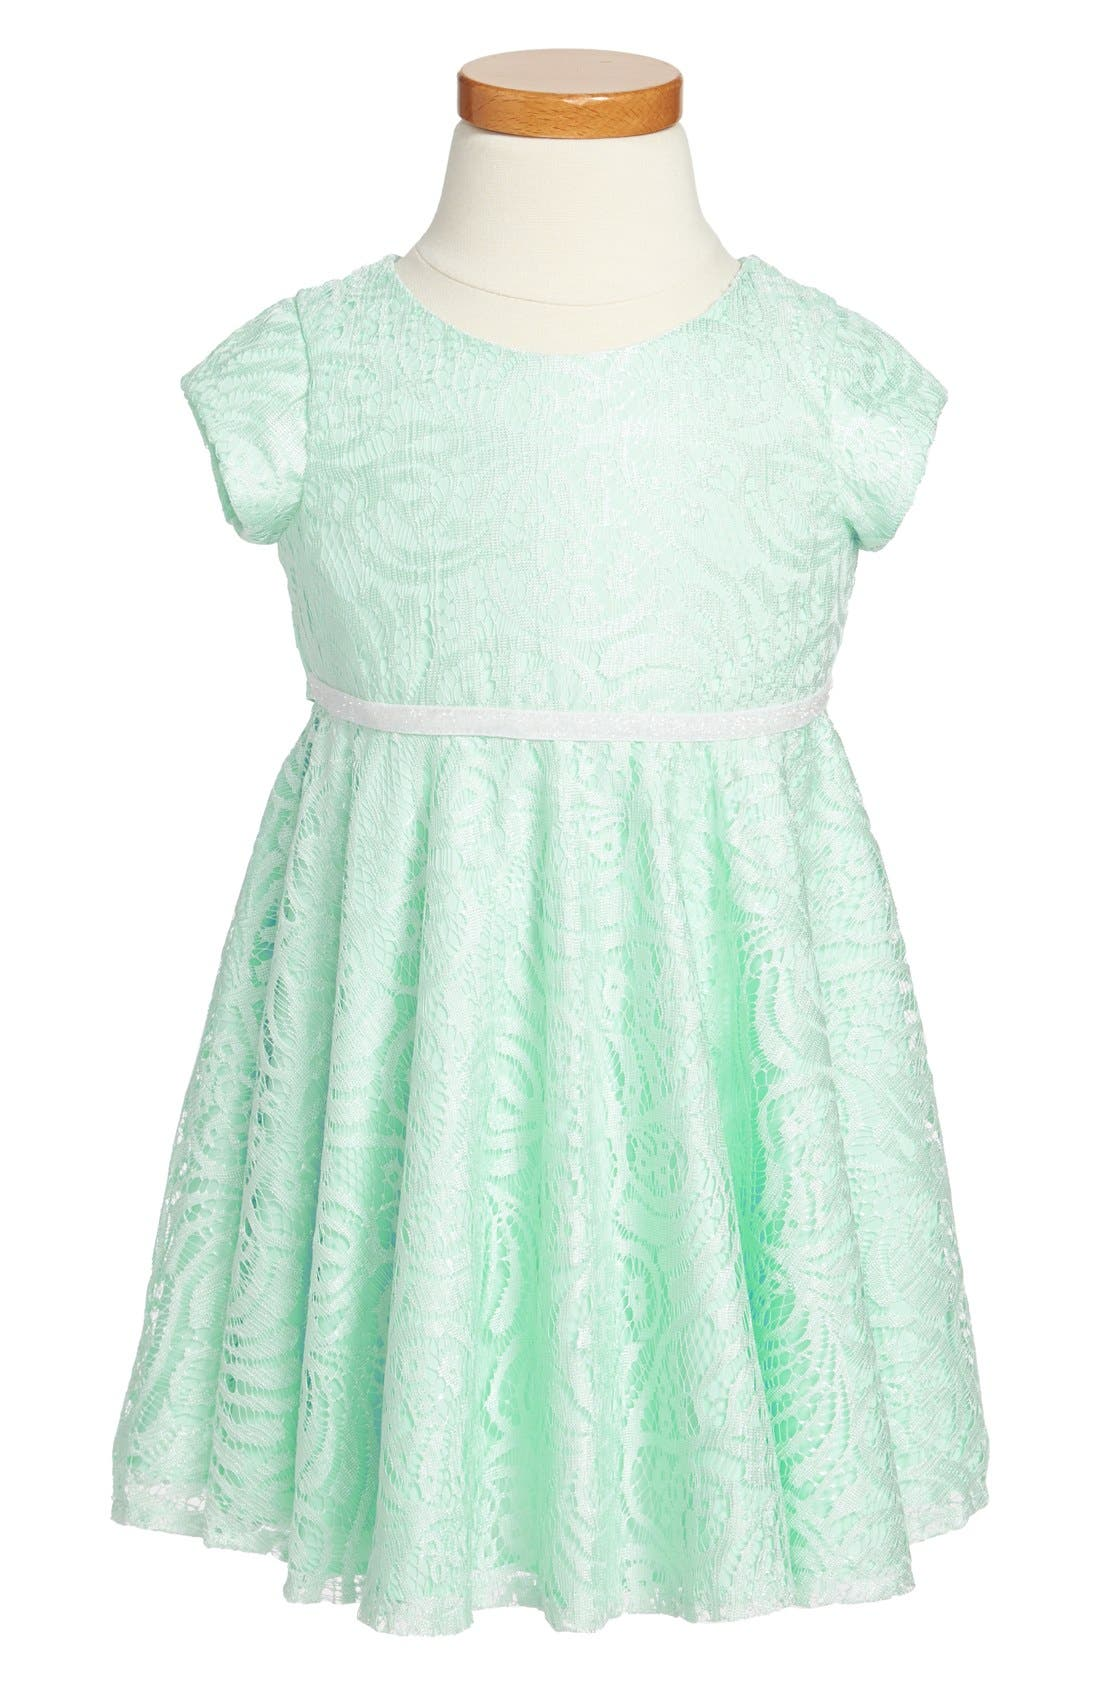 Alternate Image 1 Selected - Pippa & Julie Lace Skater Dress (Toddler Girls)